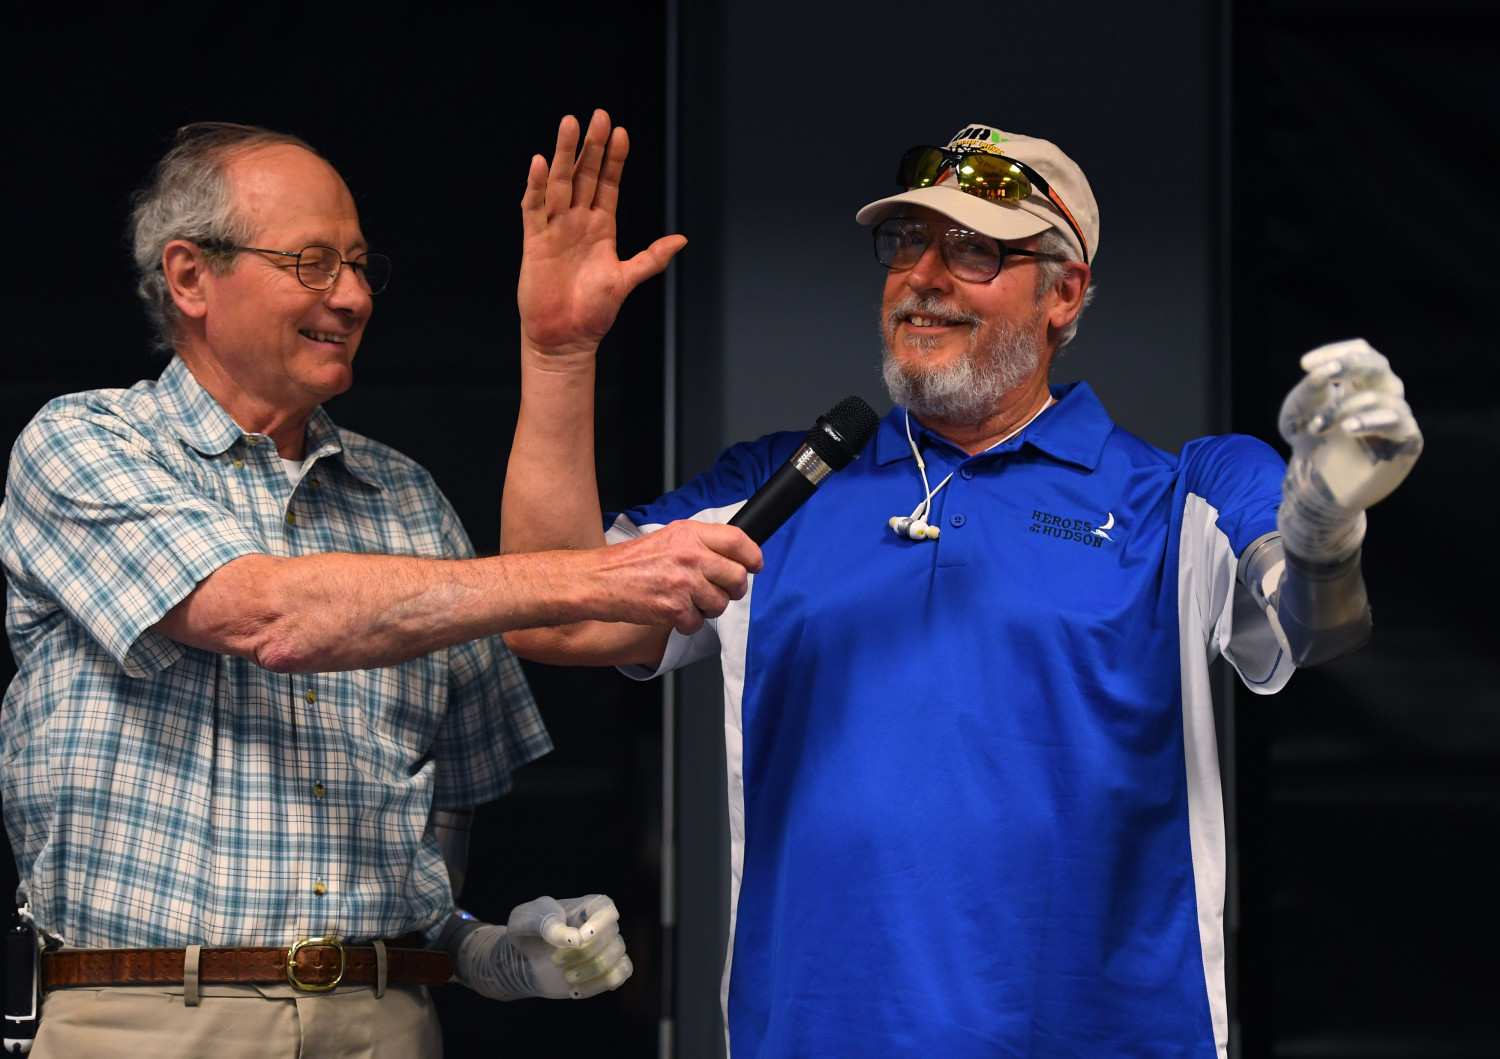 US Army veteran Fred Downs smiles as US Army Veteran Artie McAuley(R) is shown with his LUKE prosthetic arm, during a live demonstration of the first veteran being fitted with LUKE (Life Under Kinetic Evolution) prosthetic arm.